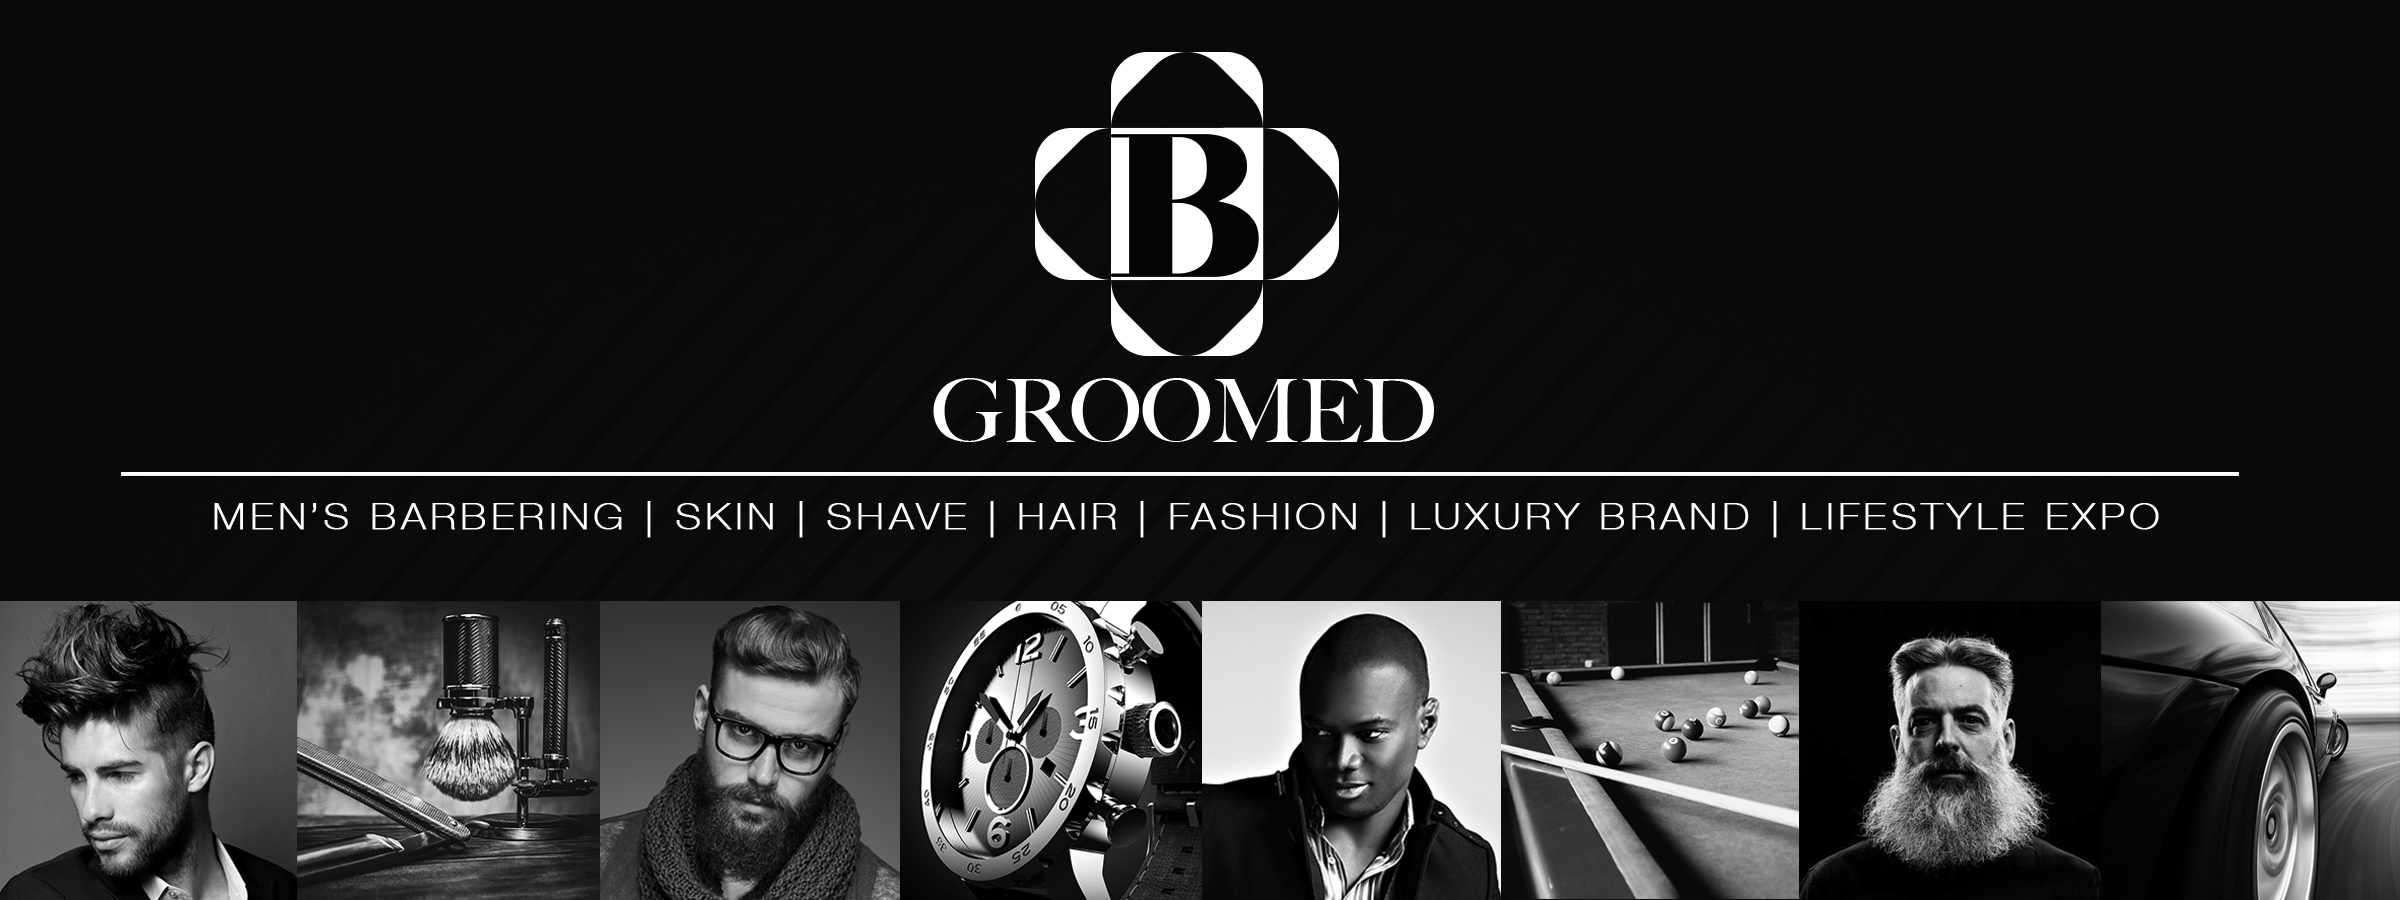 B Groomed - freestyle design